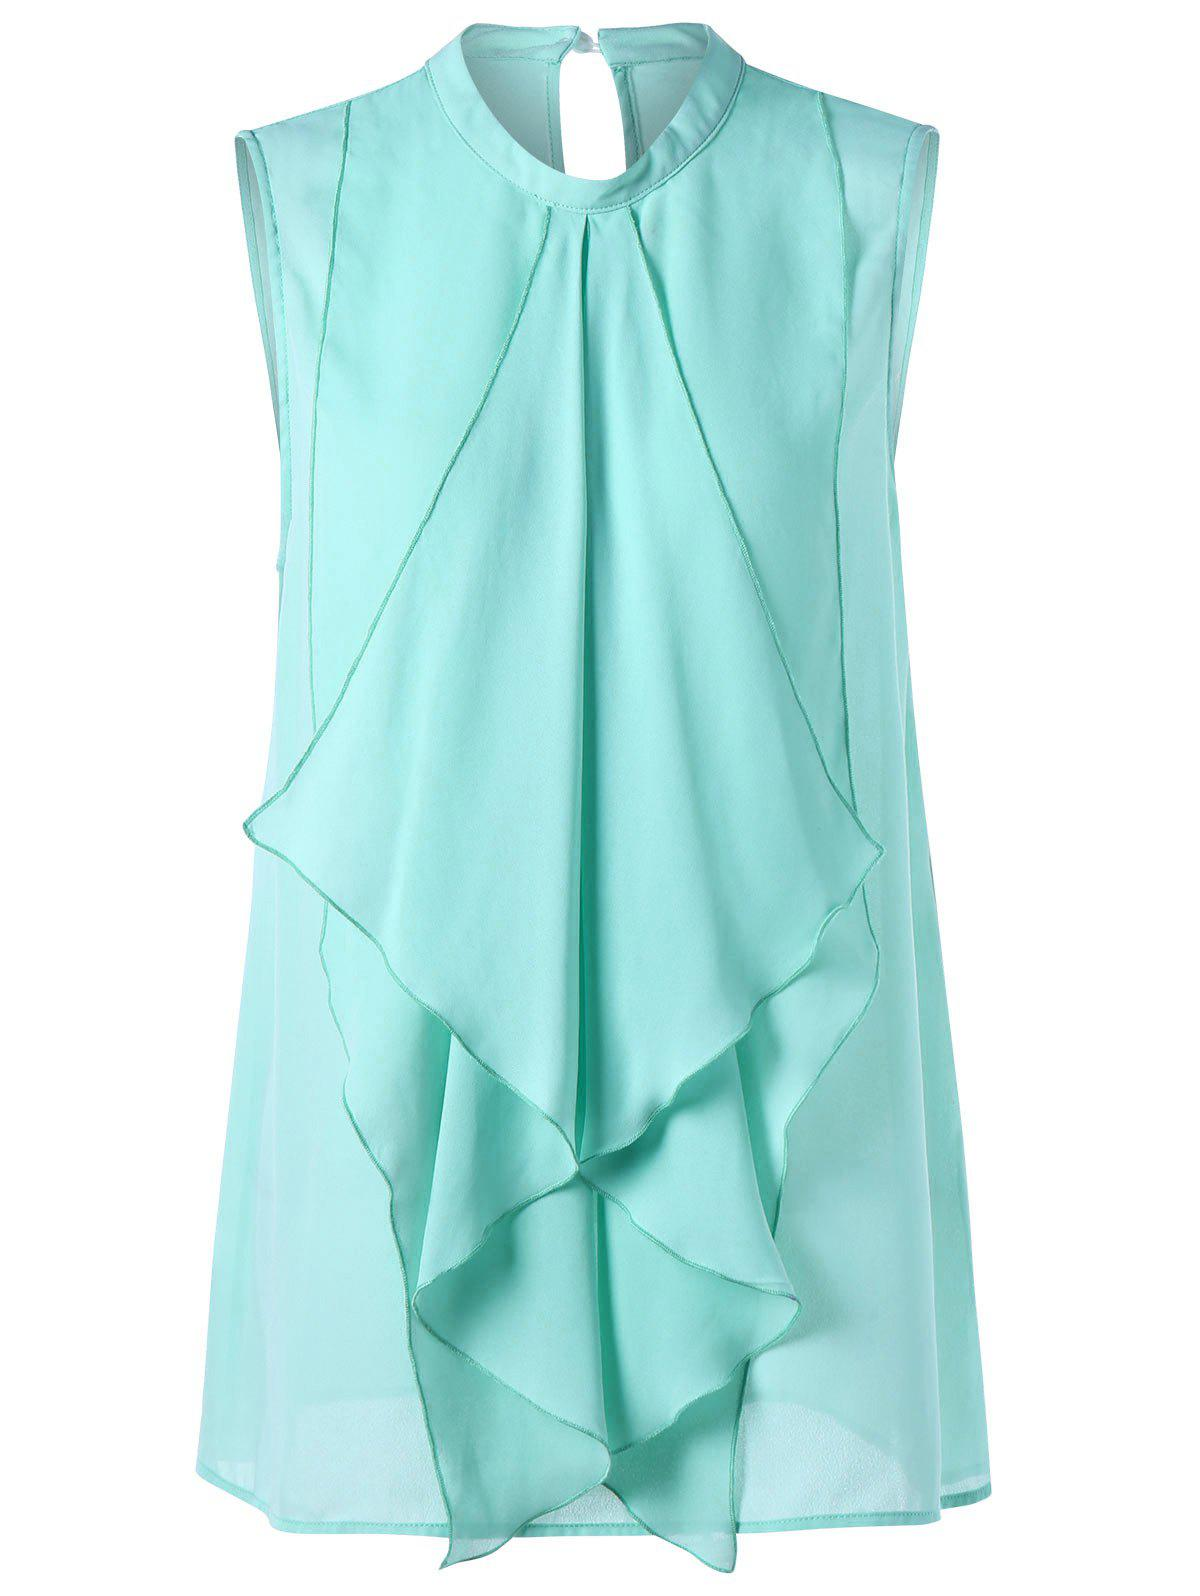 Waterfall Ruffle Plus Size Chiffon Tank TopWOMEN<br><br>Size: 3XL; Color: LIGHT GREEN; Material: Polyester; Shirt Length: Regular; Sleeve Length: Sleeveless; Collar: Mock Neck; Style: Fashion; Season: Summer; Pattern Type: Solid; Weight: 0.2500kg; Package Contents: 1 x Top;